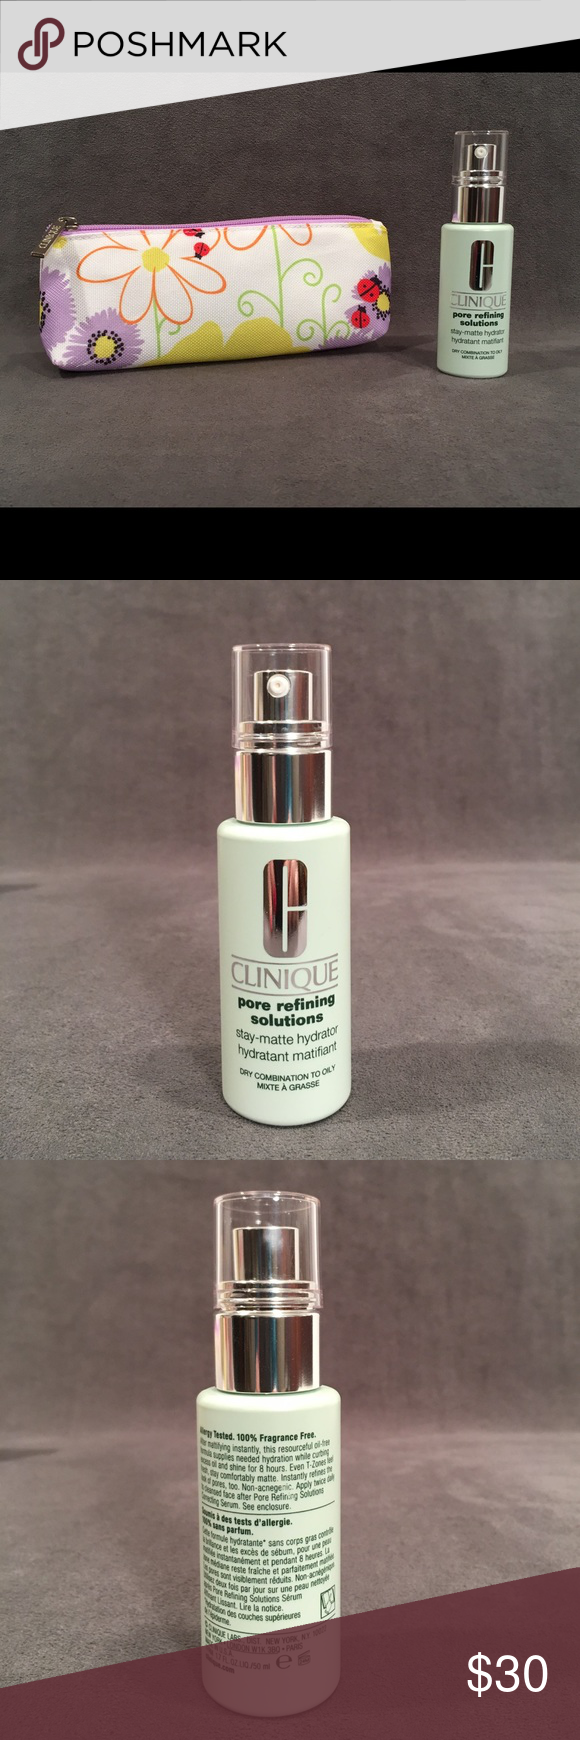 Clinique Pore Refining Stay Matte Lotion & Bag Authentic Clinique! Pore Refining Solutions Stay Matte Hydrator for Oily, Combination, Dry Skin Types. Supplies needed hydration while curbing excess oil and shine for 8 hours. Partially used. Approximately 60% of lotion remaining. Clinique Other